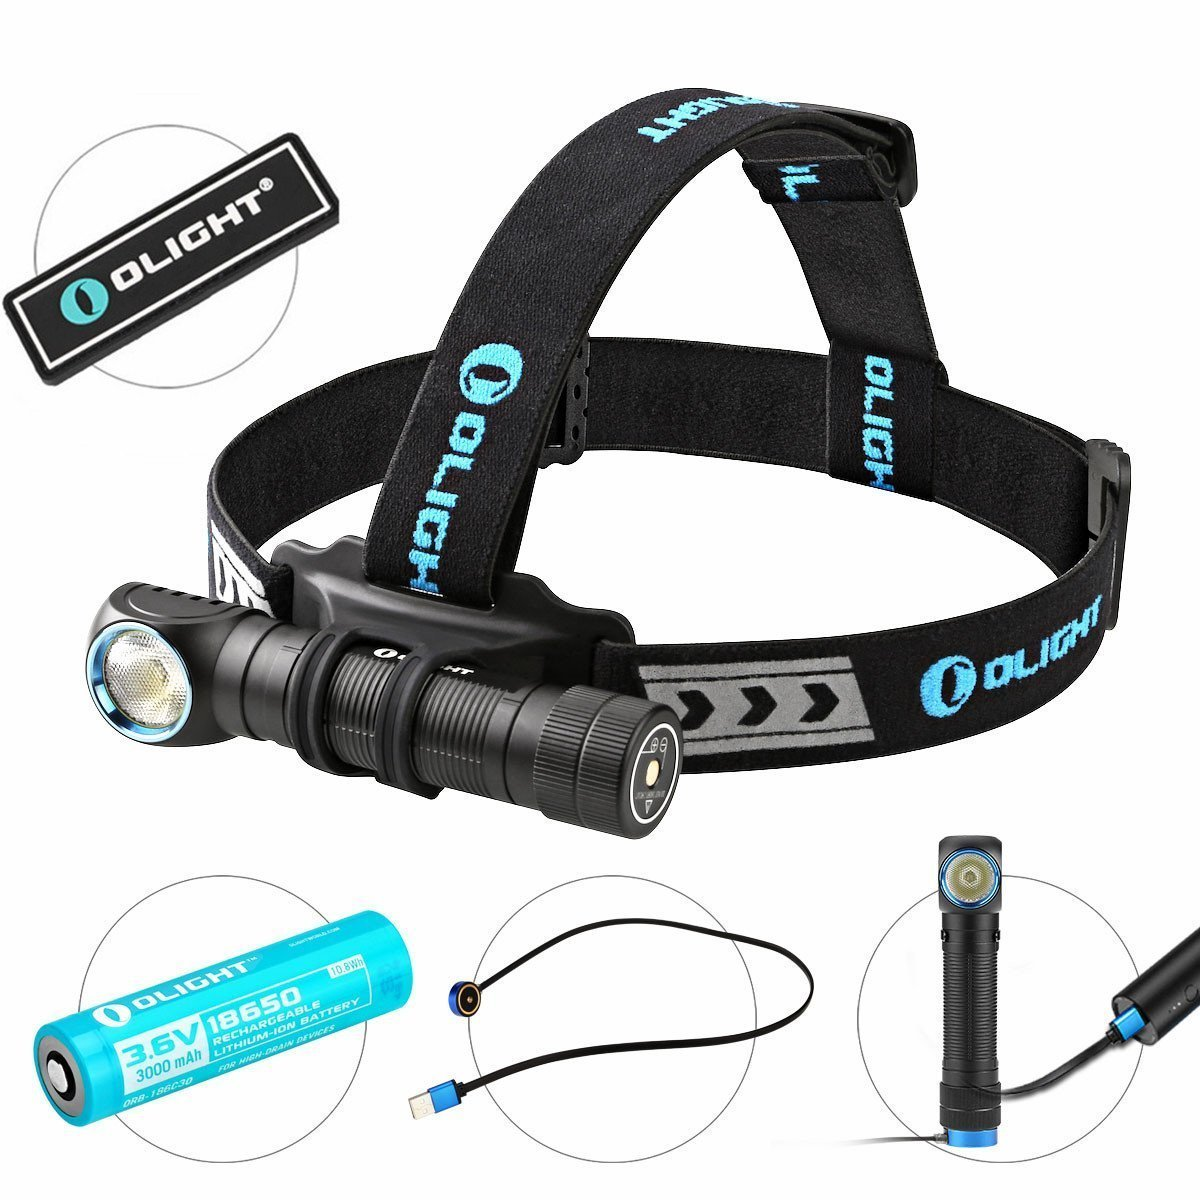 Olight H2R NOVA 2300 Lumens CREE XHP50 LED 18650 USB Rechargeable Flashlight (Neural White)